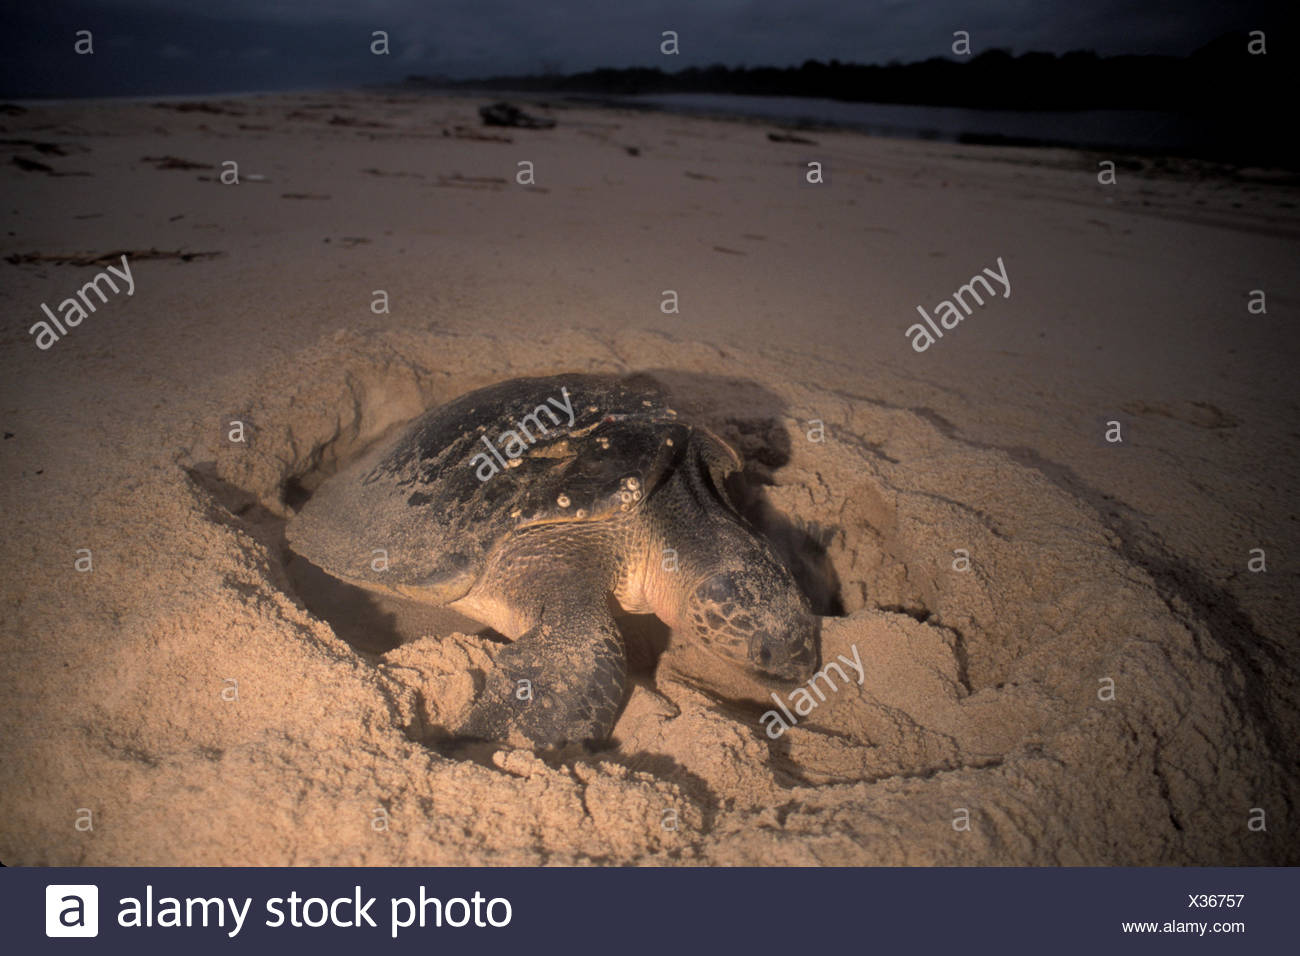 An Olive ridley sea turtle, Lepidochelys olivacea, on the beach. - Stock Image